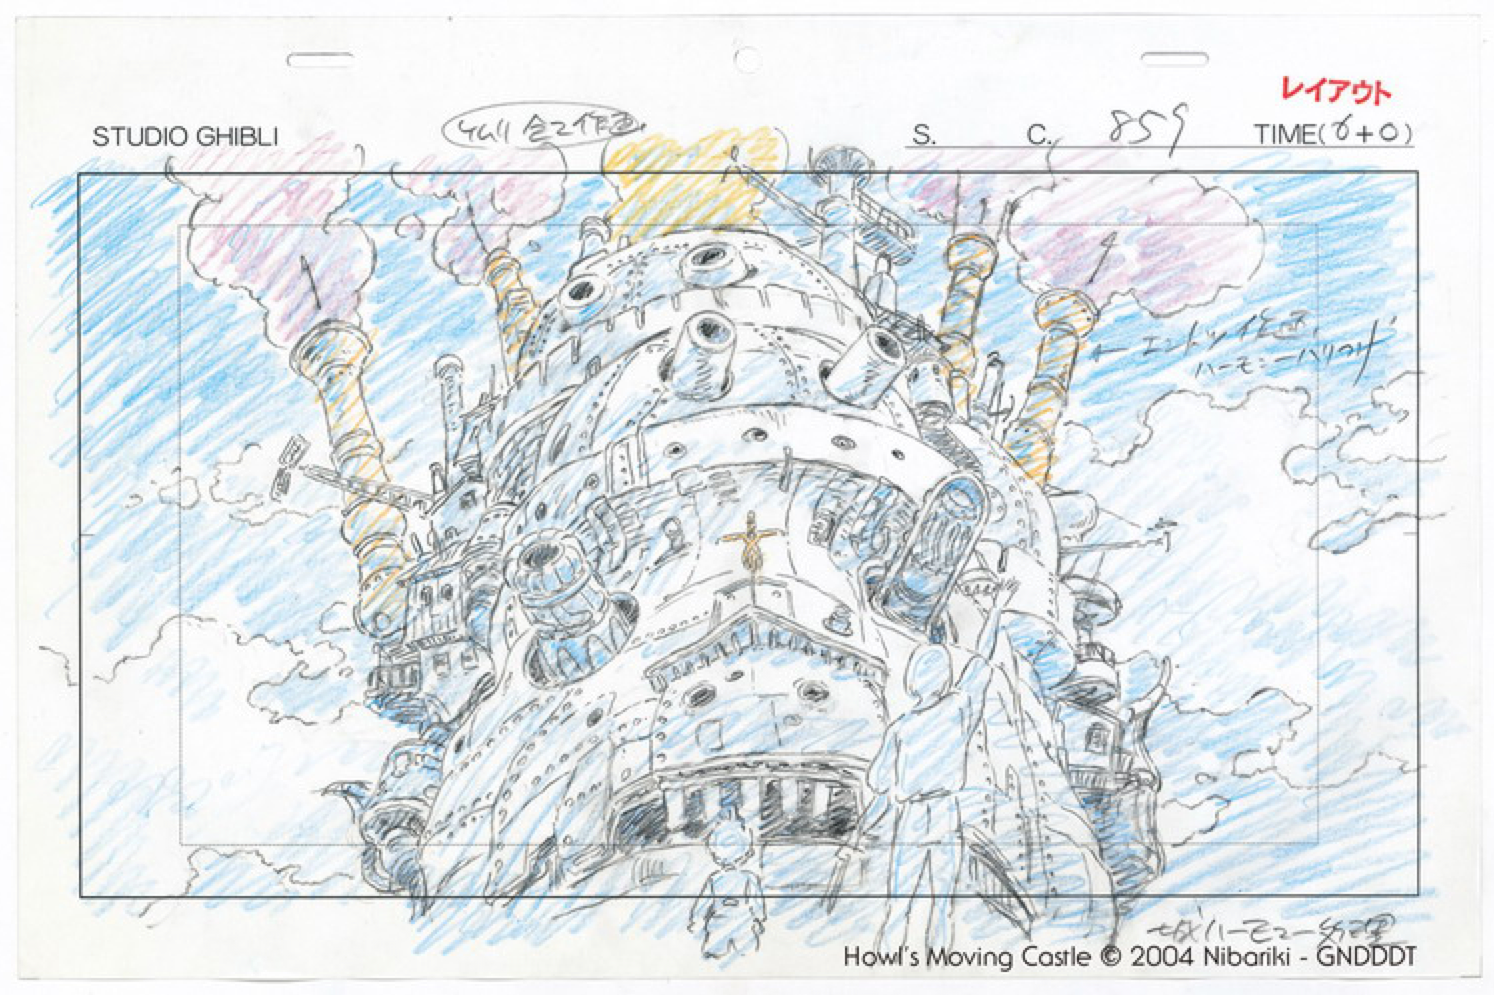 dessins-studio-ghibli-exposition-11